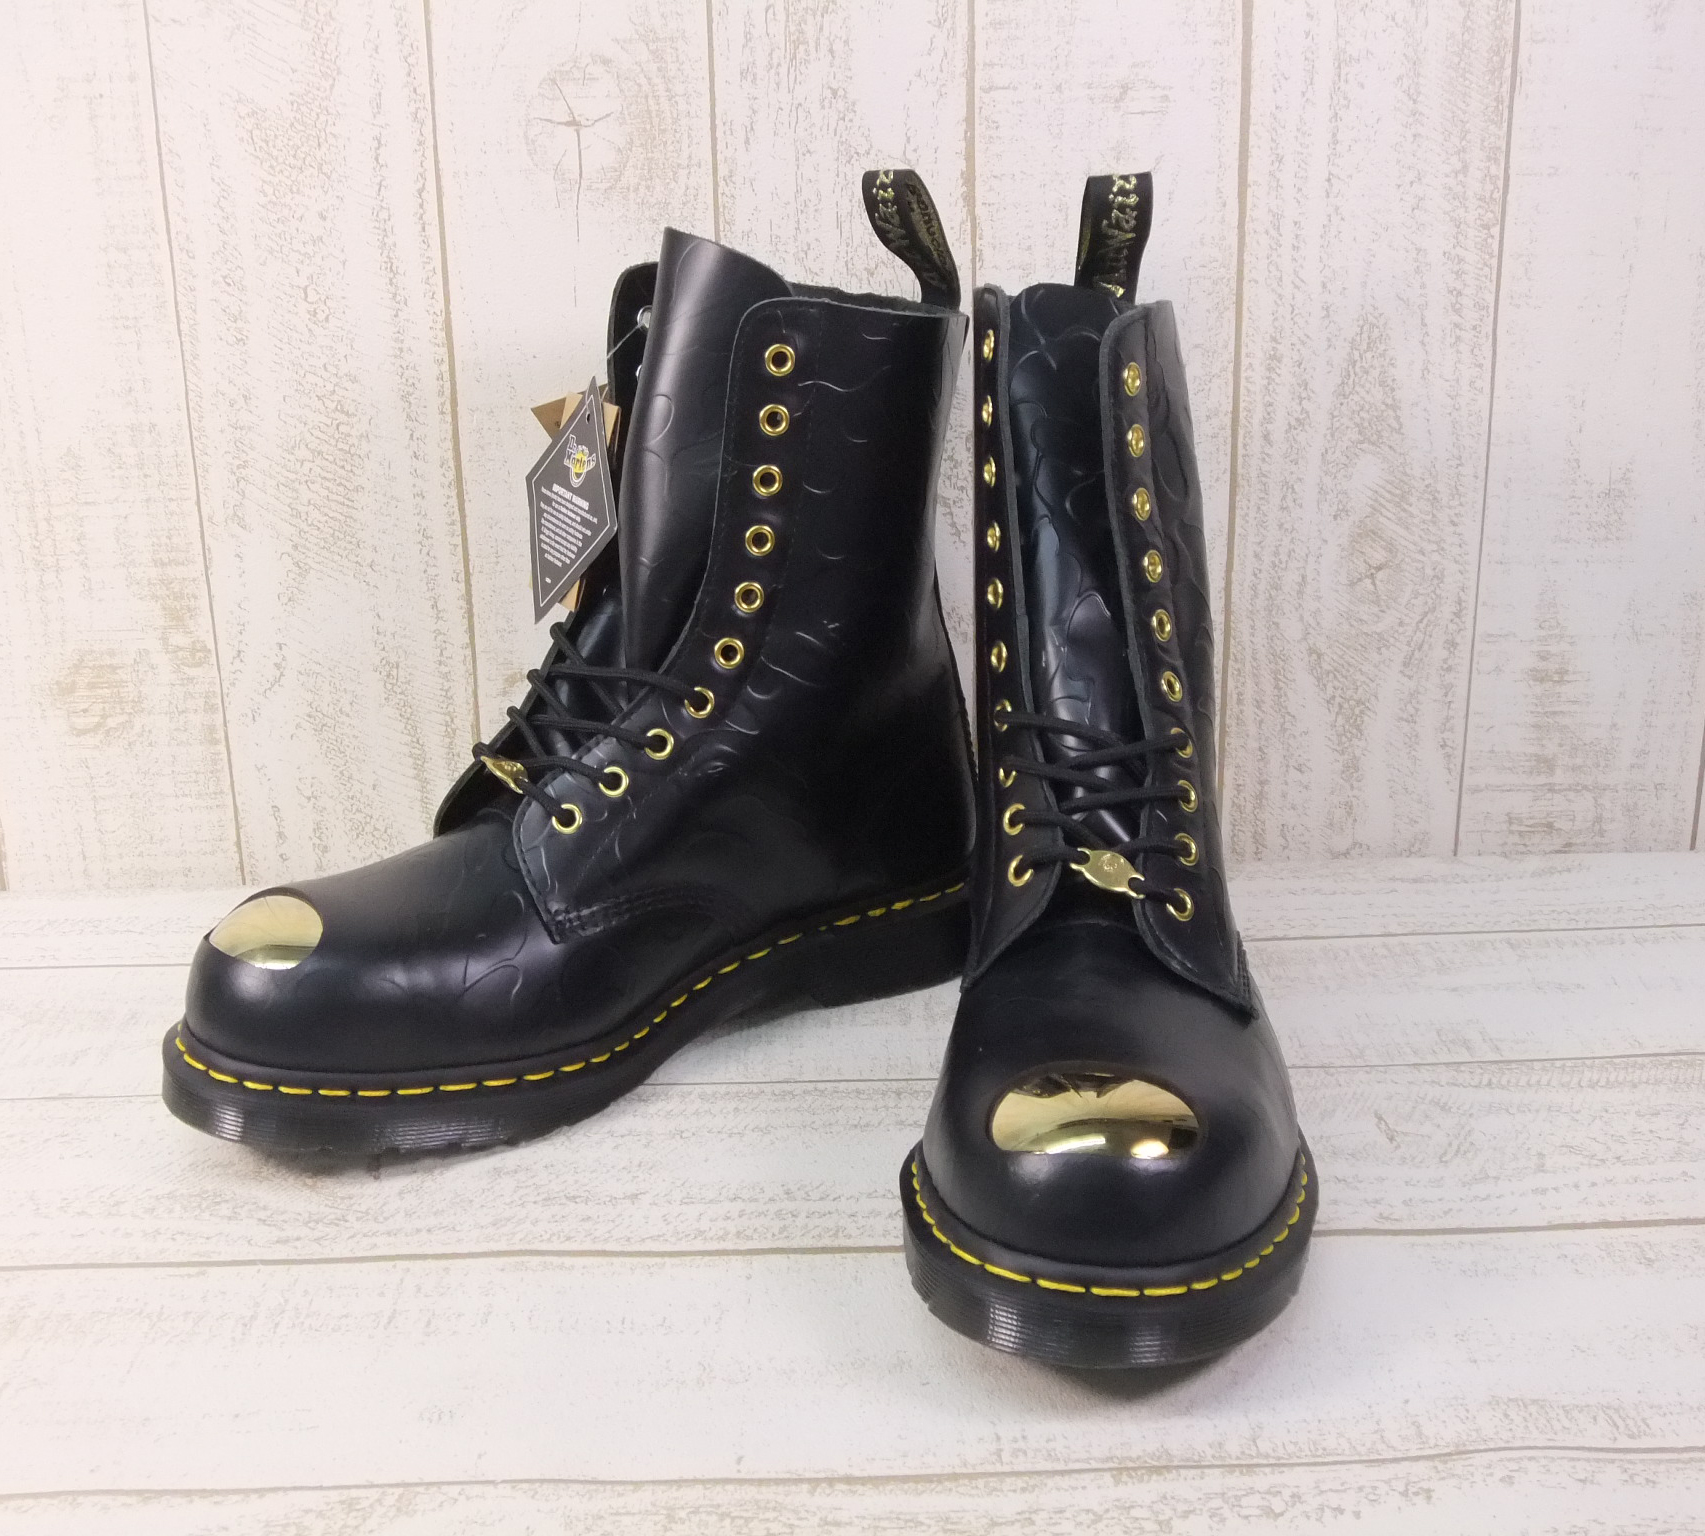 【中古】 BAPE × Dr.MARTENS 10 HOLE STEEL TOE CAP SHOES ブーツ 【ファッション】※2020年7月入荷※